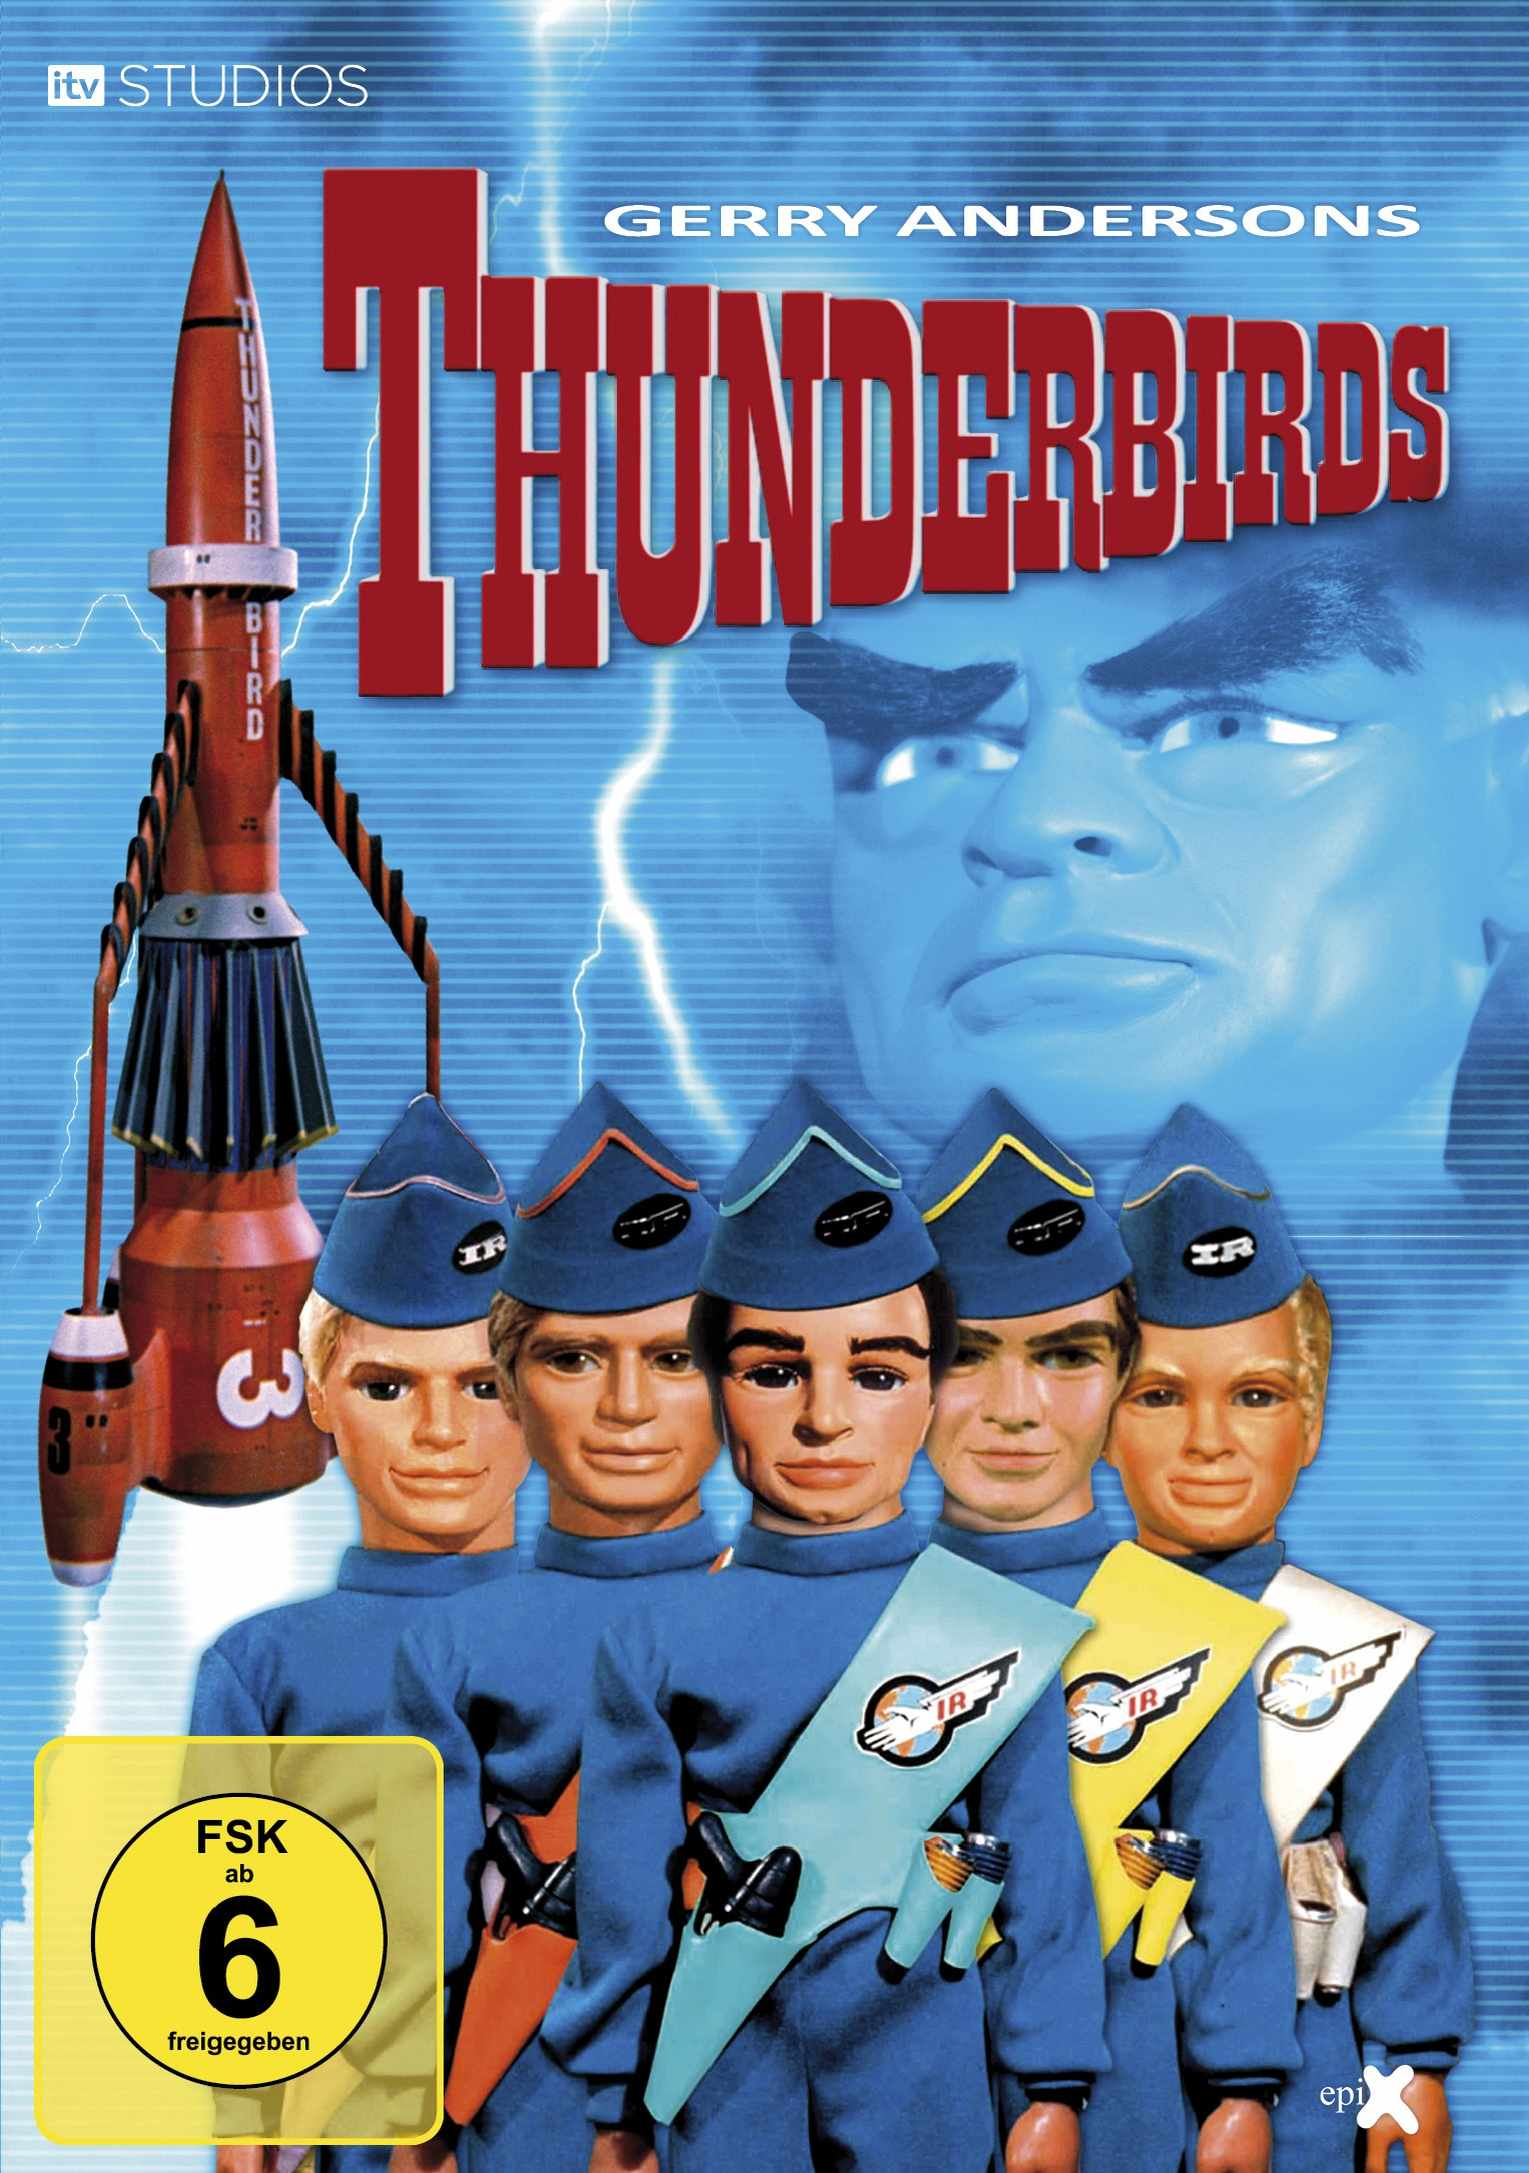 DVD_THUNDERBIRDS_10pack